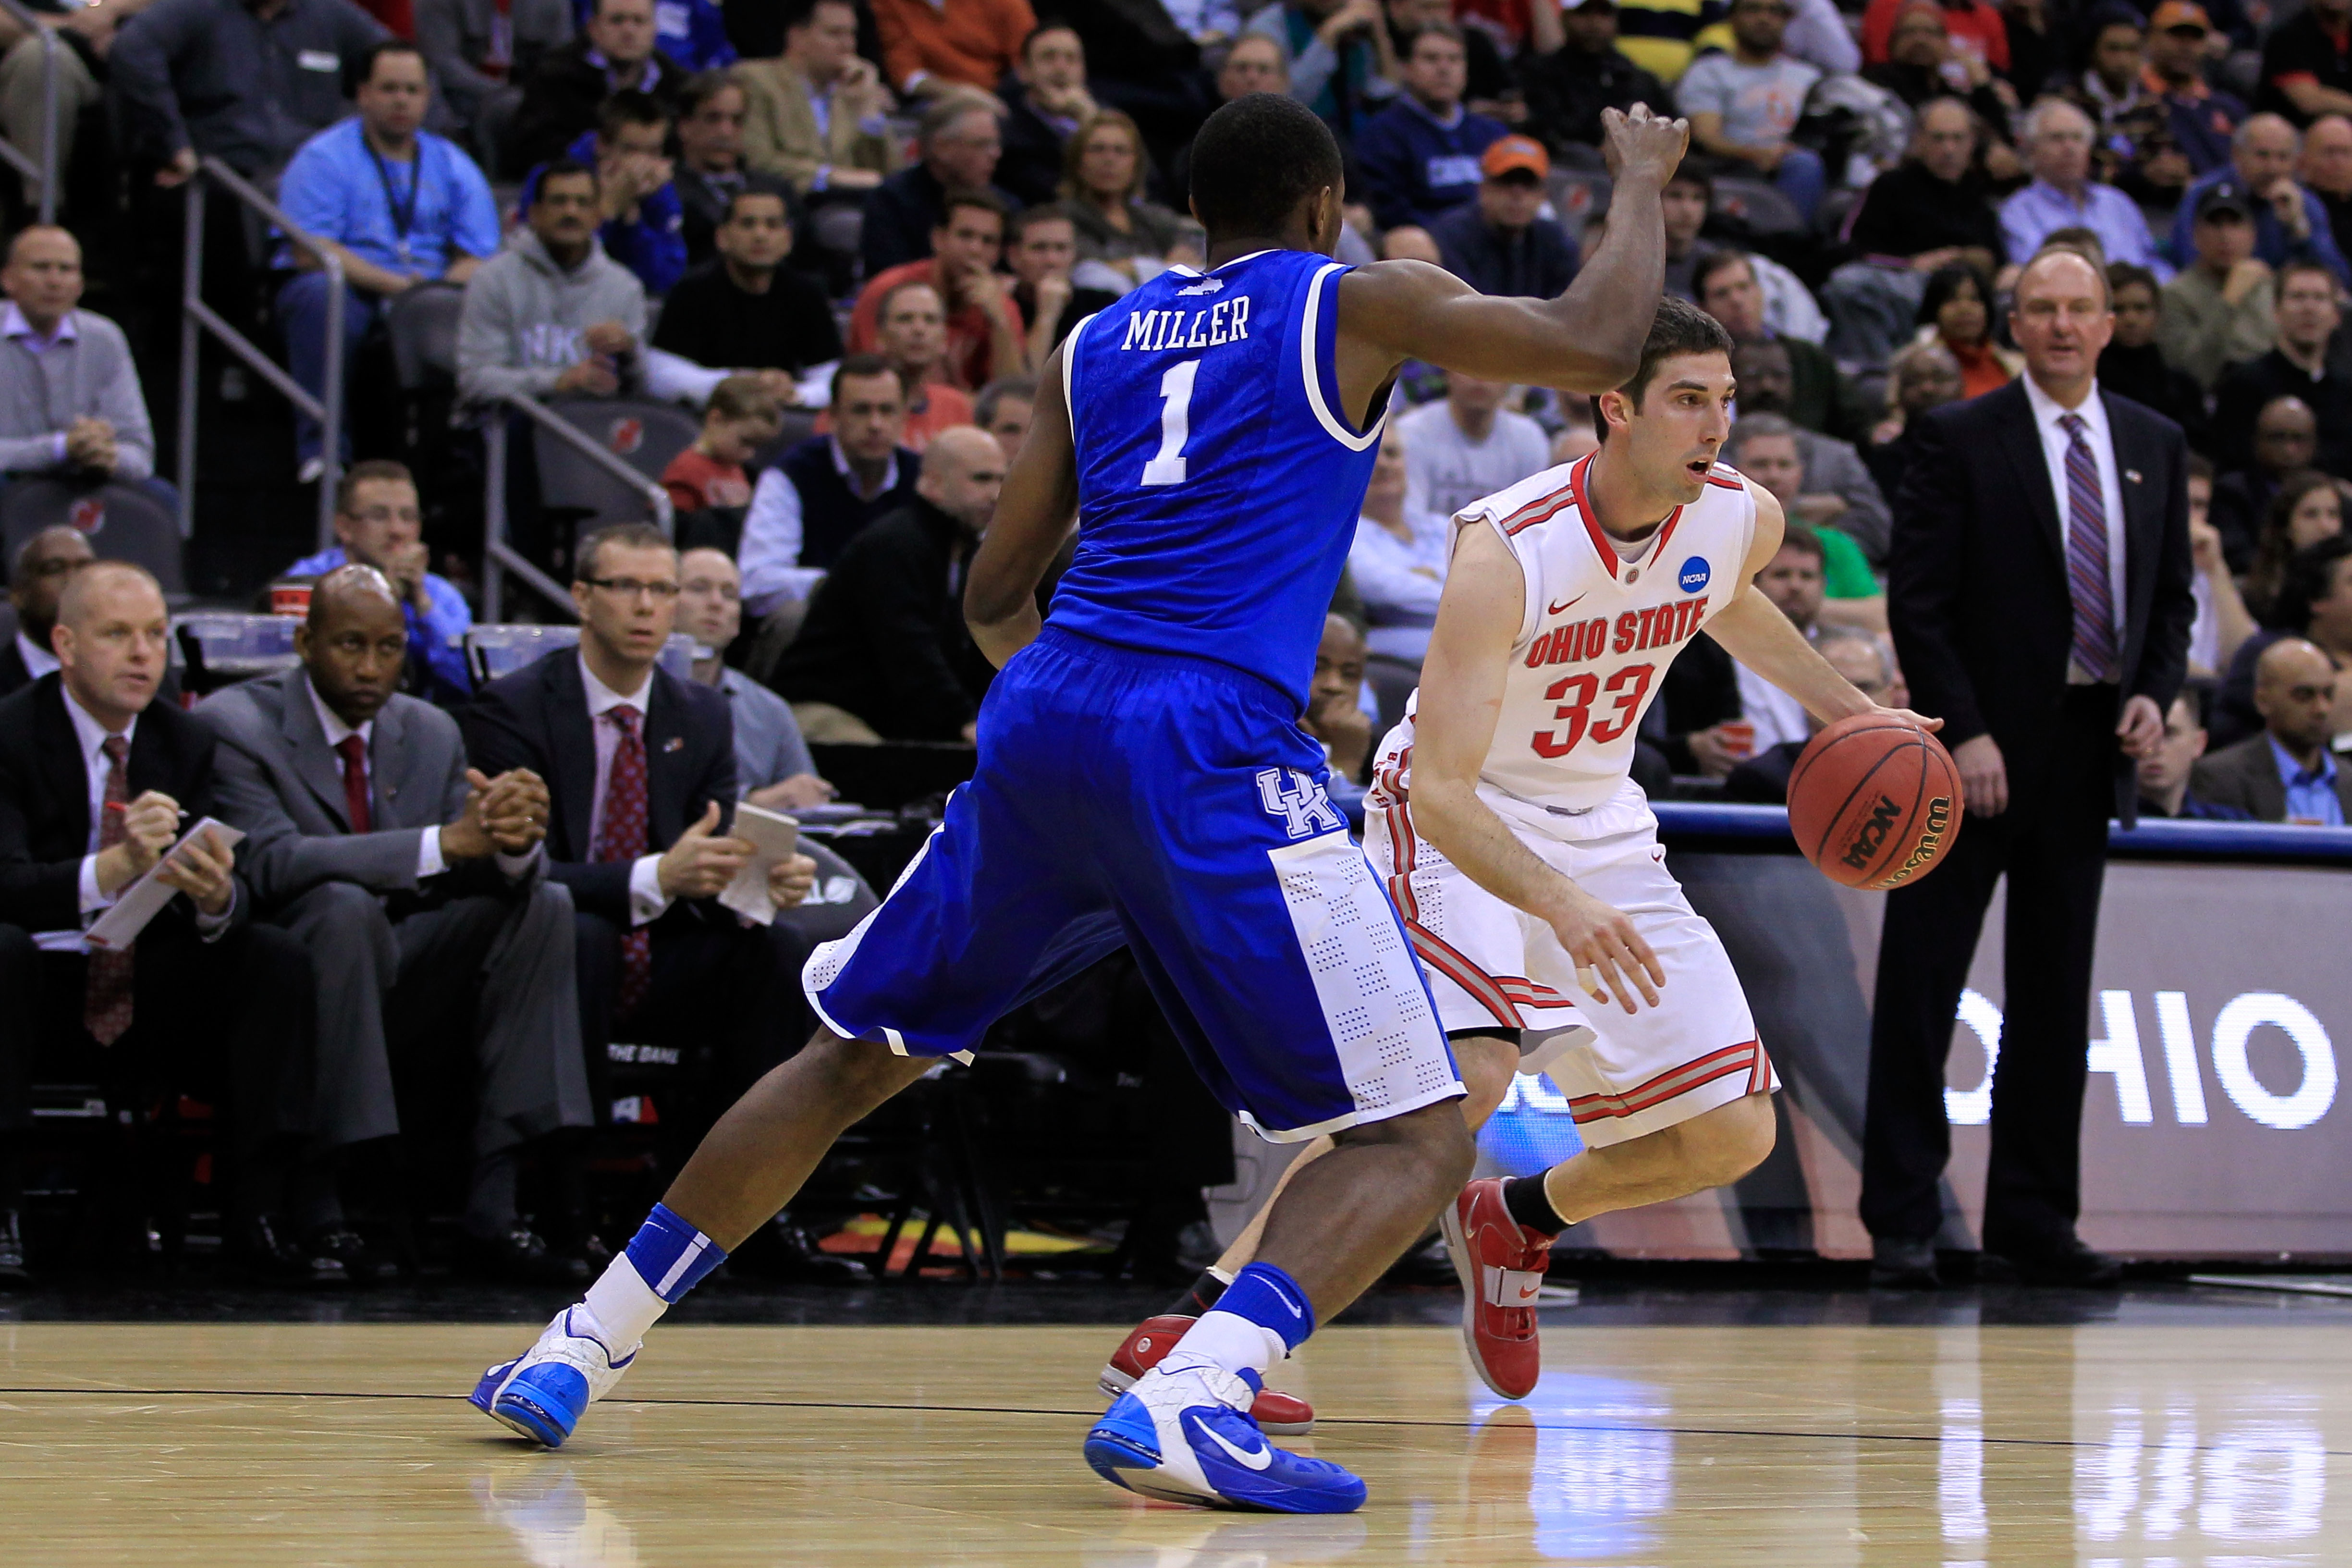 NEWARK, NJ - MARCH 25:  Jon Diebler #33 of the Ohio State Buckeyes in action against Darius Miller #1 of the Kentucky Wildcats during the east regional semifinal of the 2011 NCAA Men's Basketball Tournament at the Prudential Center on March 25, 2011 in Ne